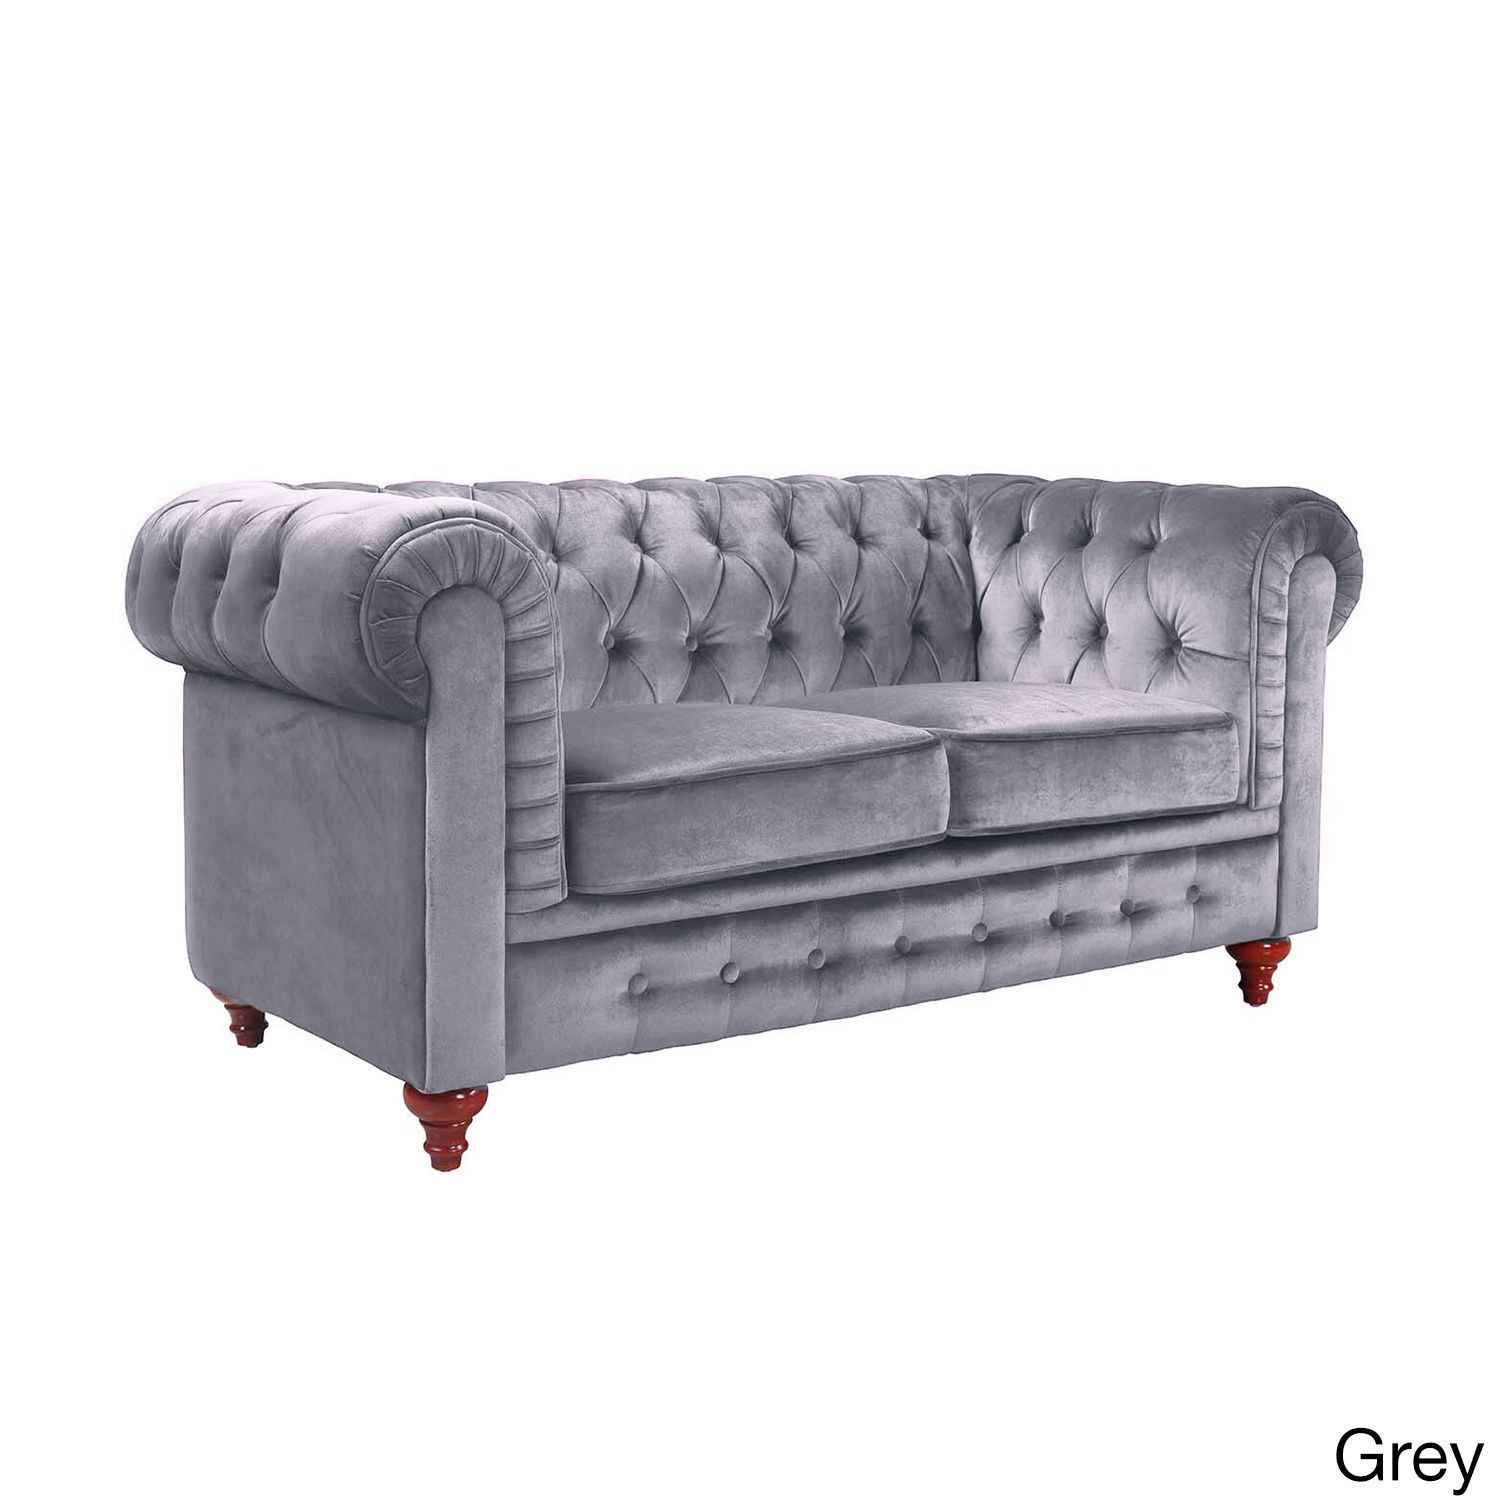 Online Shopping Bedding Furniture Electronics Jewelry Clothing More Love Seat Chesterfield Style Sofa Purple Sofa